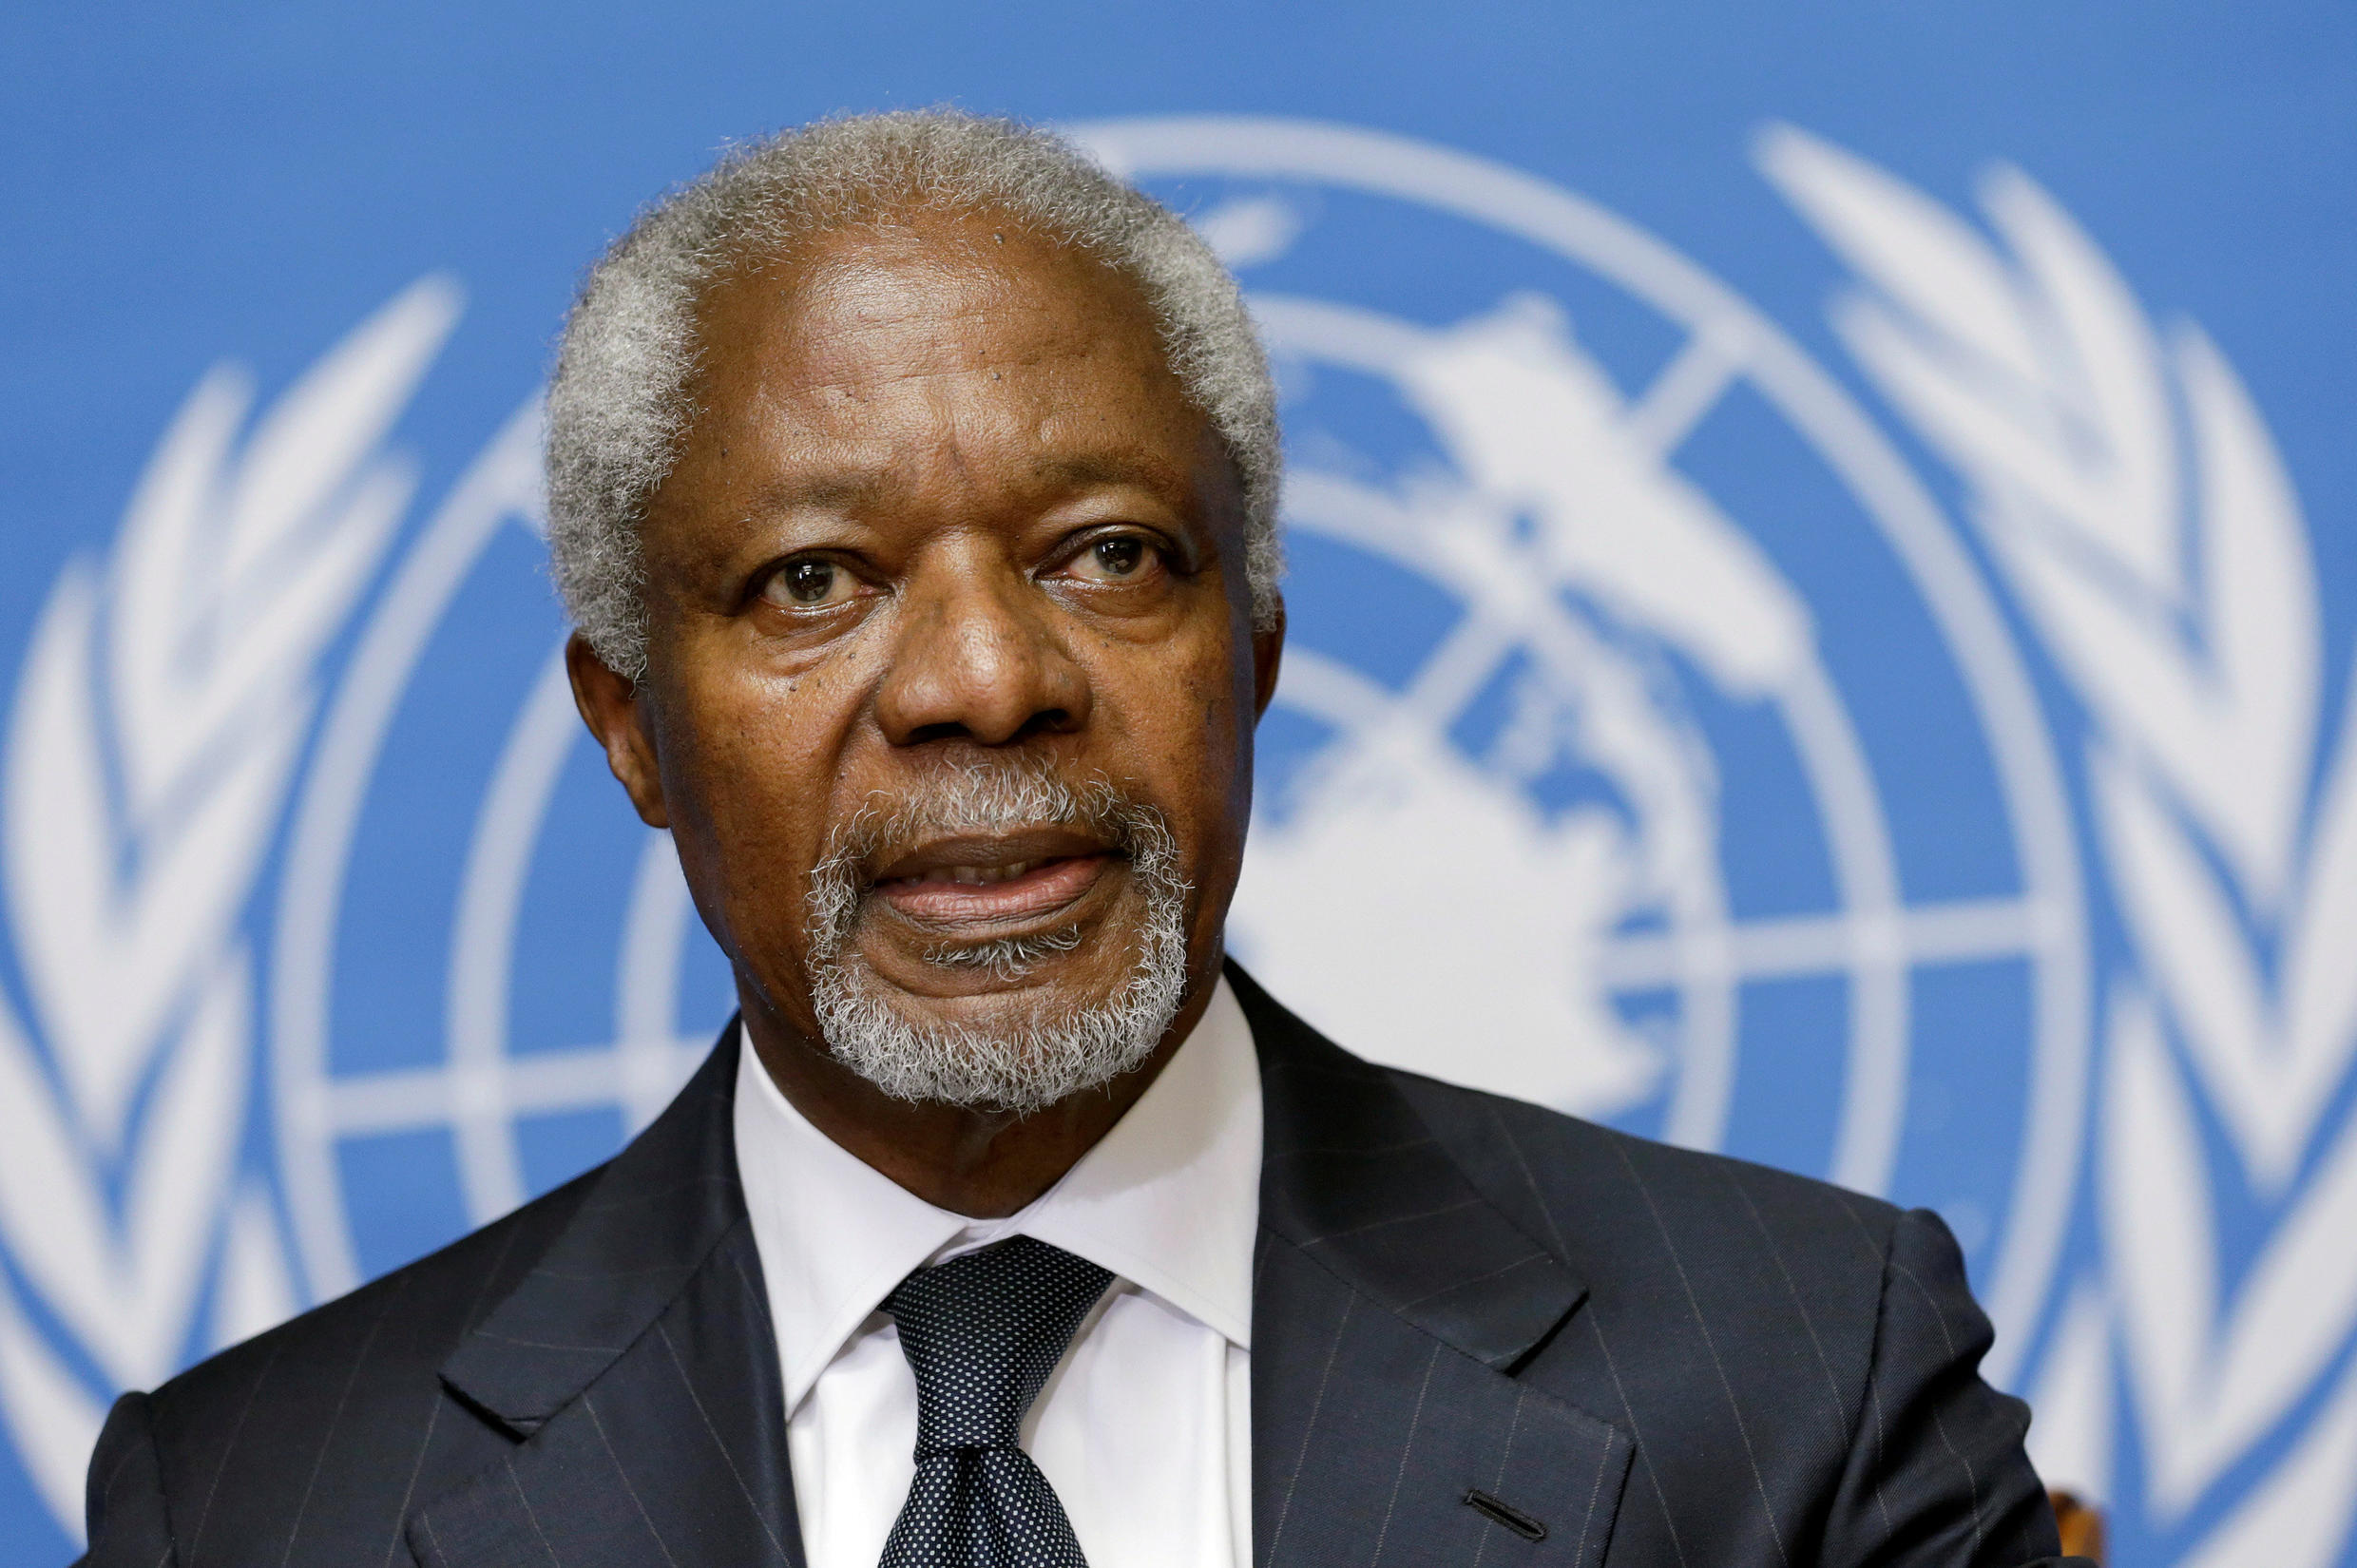 Kofi Annan addresses a news conference at the United Nations in Geneva August 2, 2012. REUTERS/Denis Balibouse